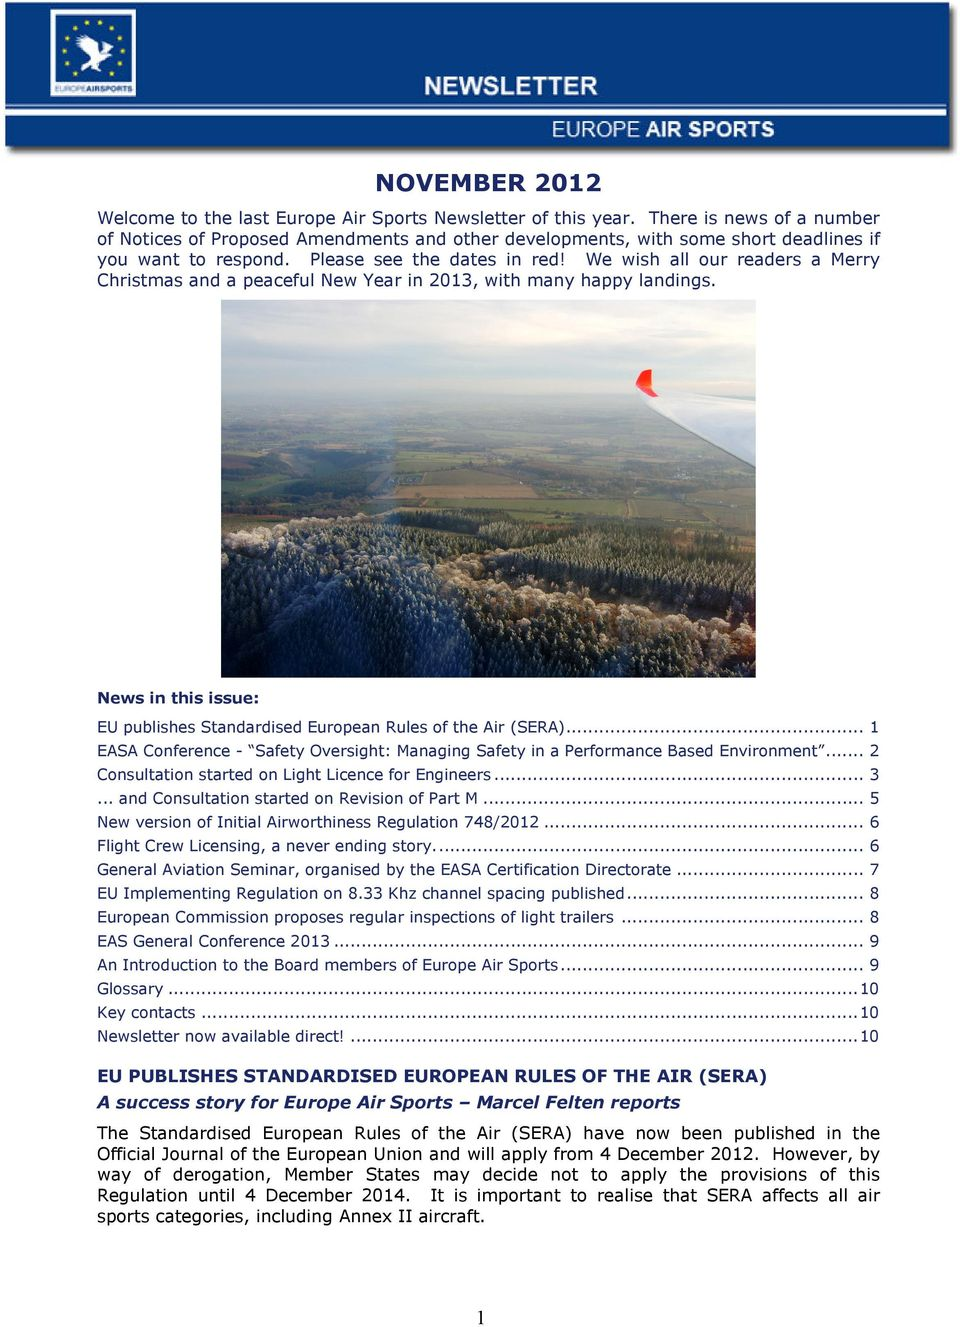 We wish all our readers a Merry Christmas and a peaceful New Year in 2013, with many happy landings. News in this issue: EU publishes Standardised European Rules of the Air (SERA).